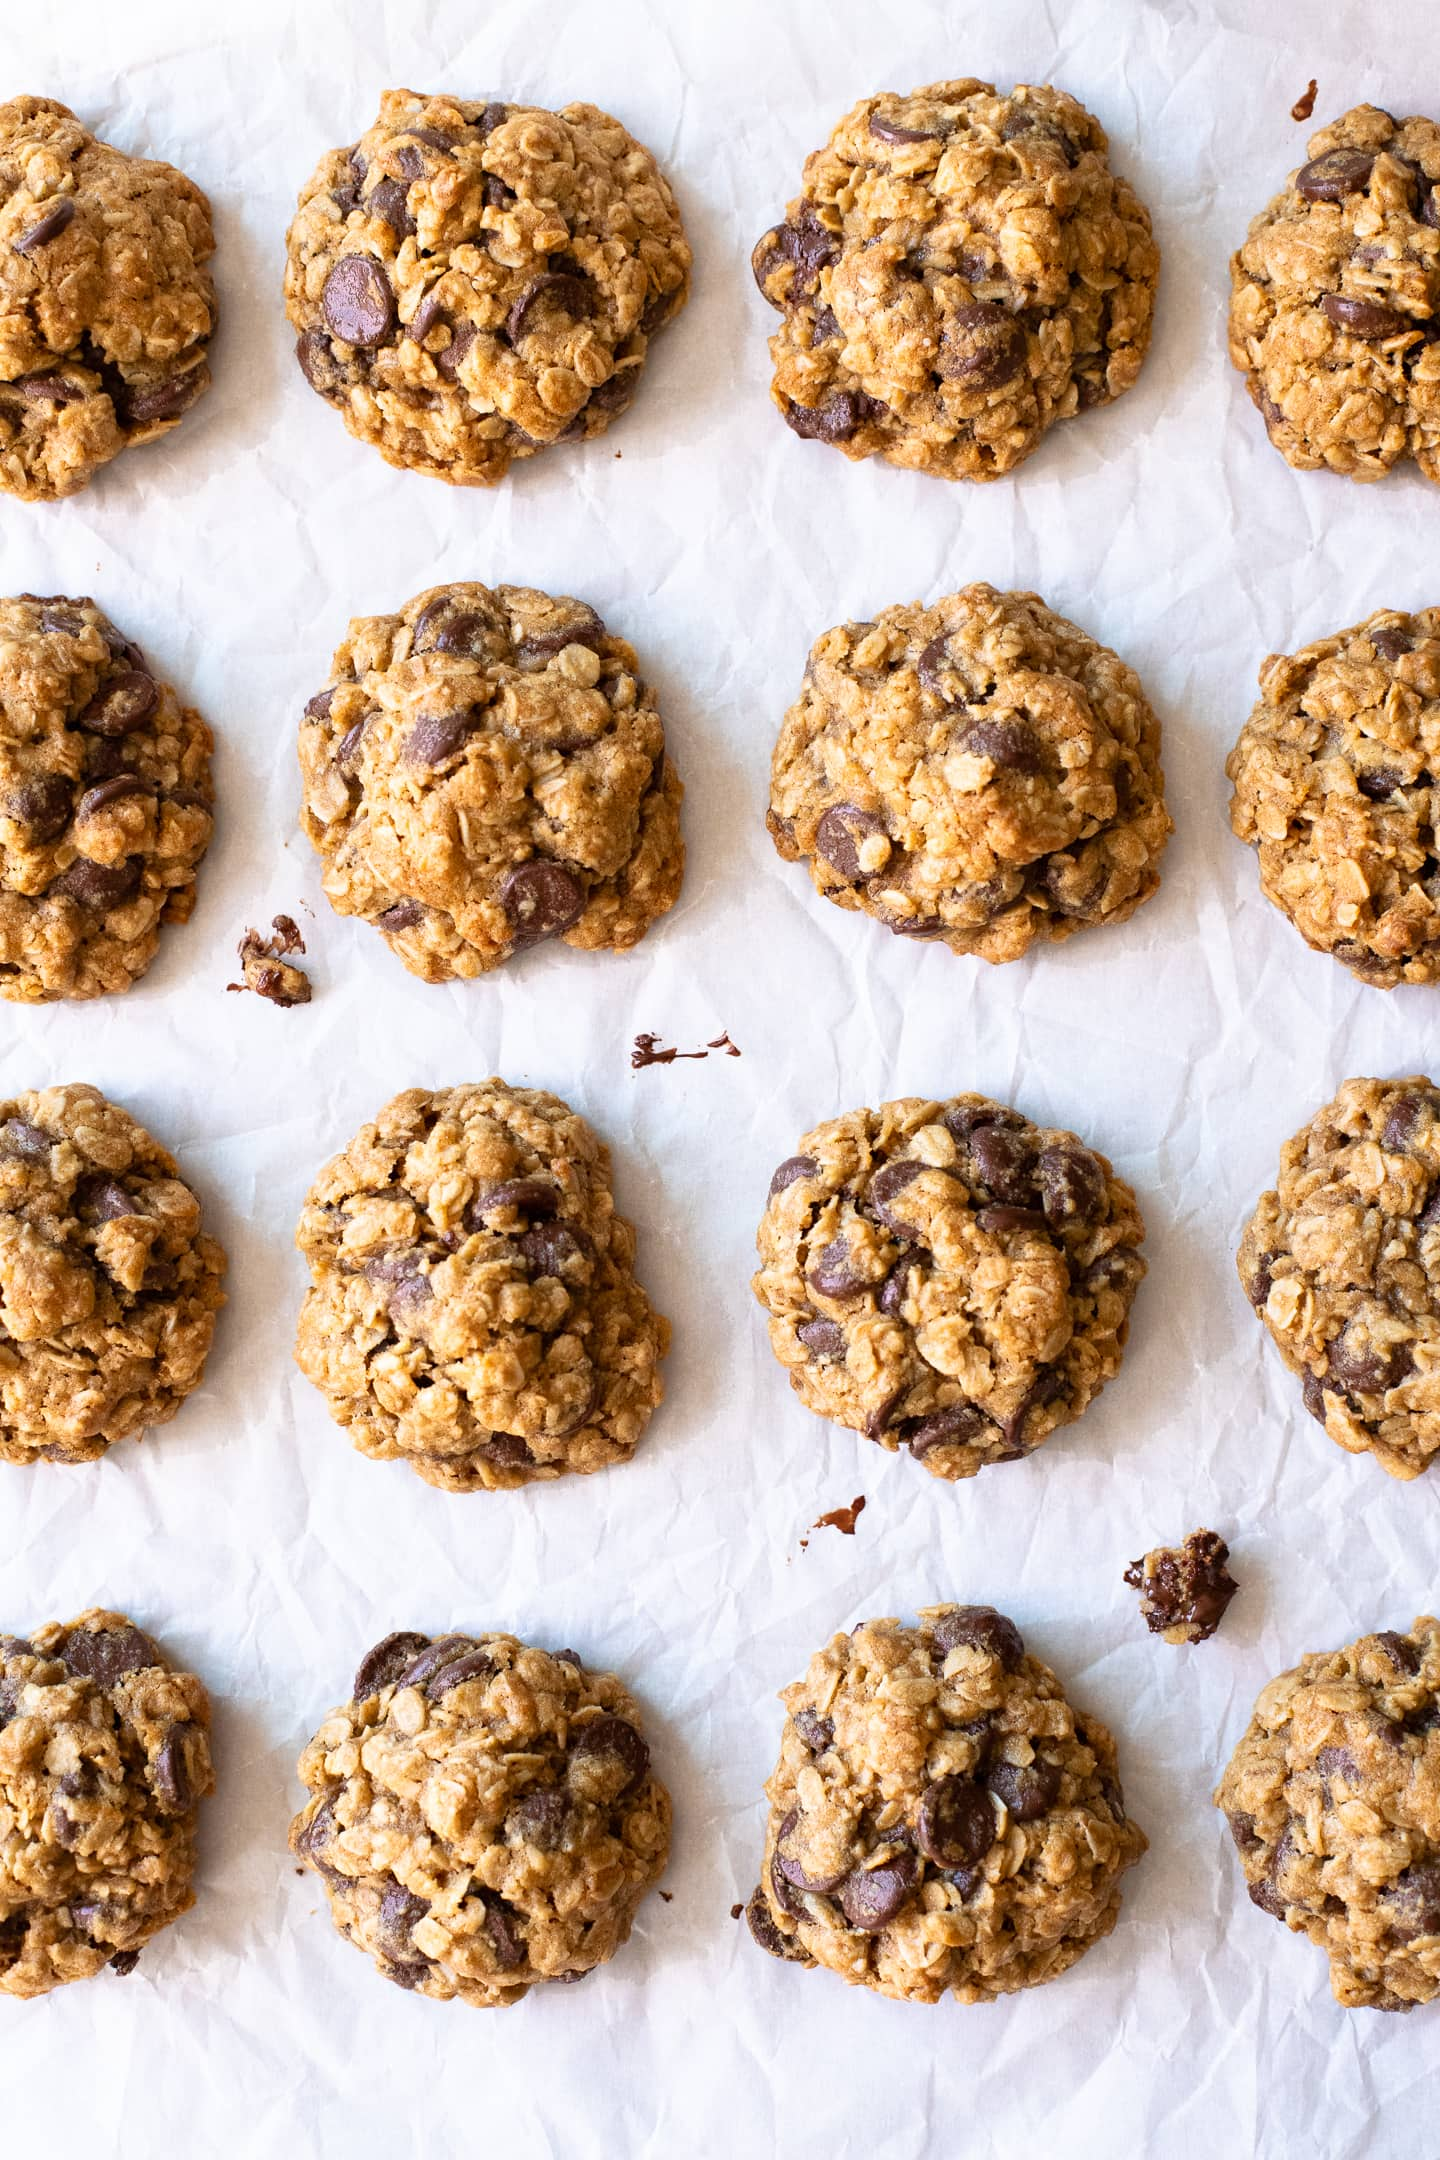 Overhead view of gluten-free Oatmeal Chocolate Chip Cookies, arranged in a grid on a crinkled sheet of white parchment paper.